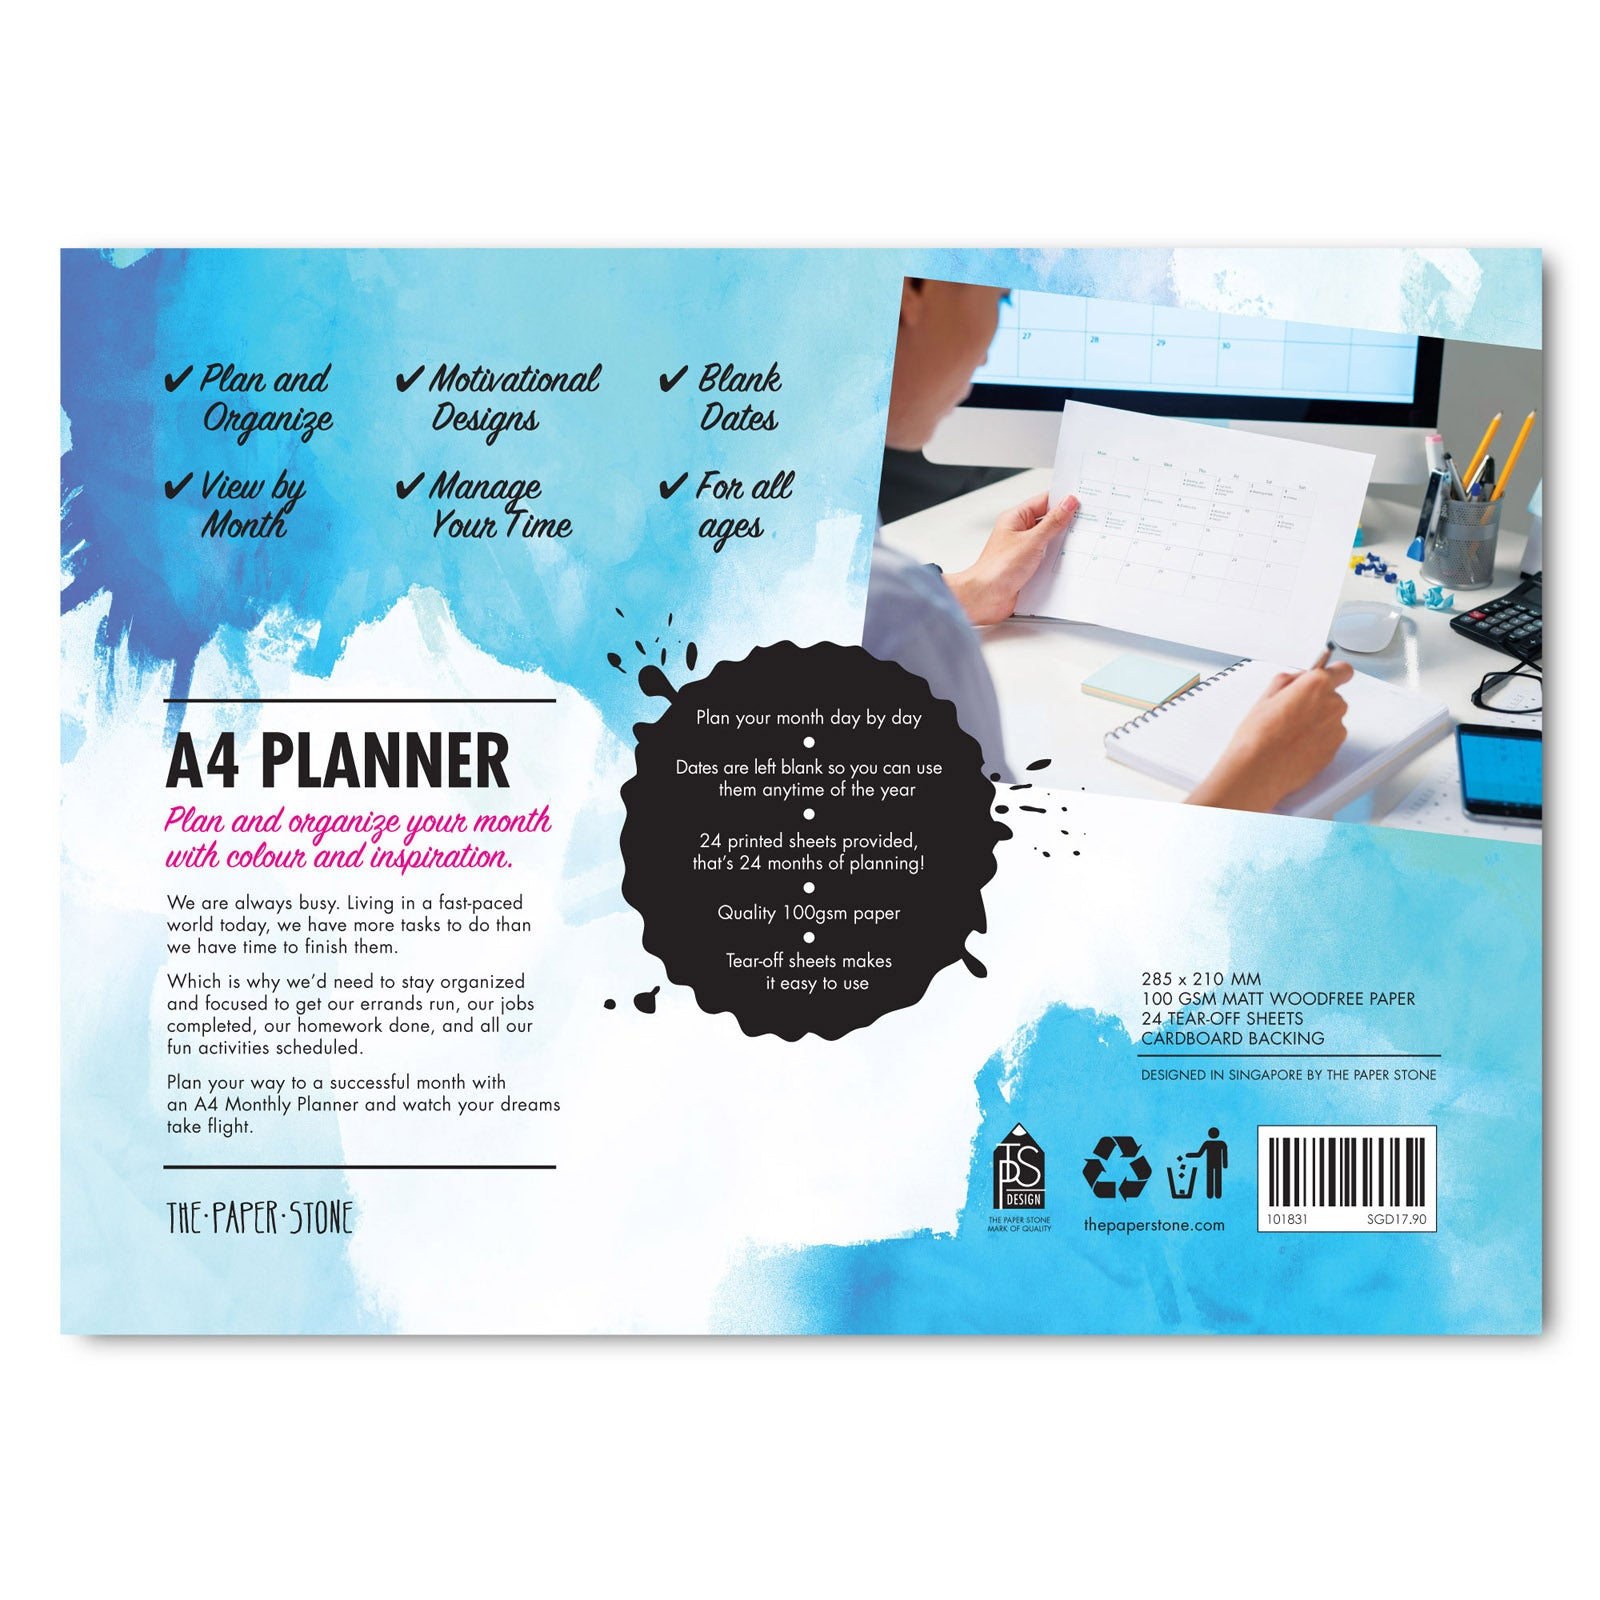 A4 Planner - Reach For Your Dreams